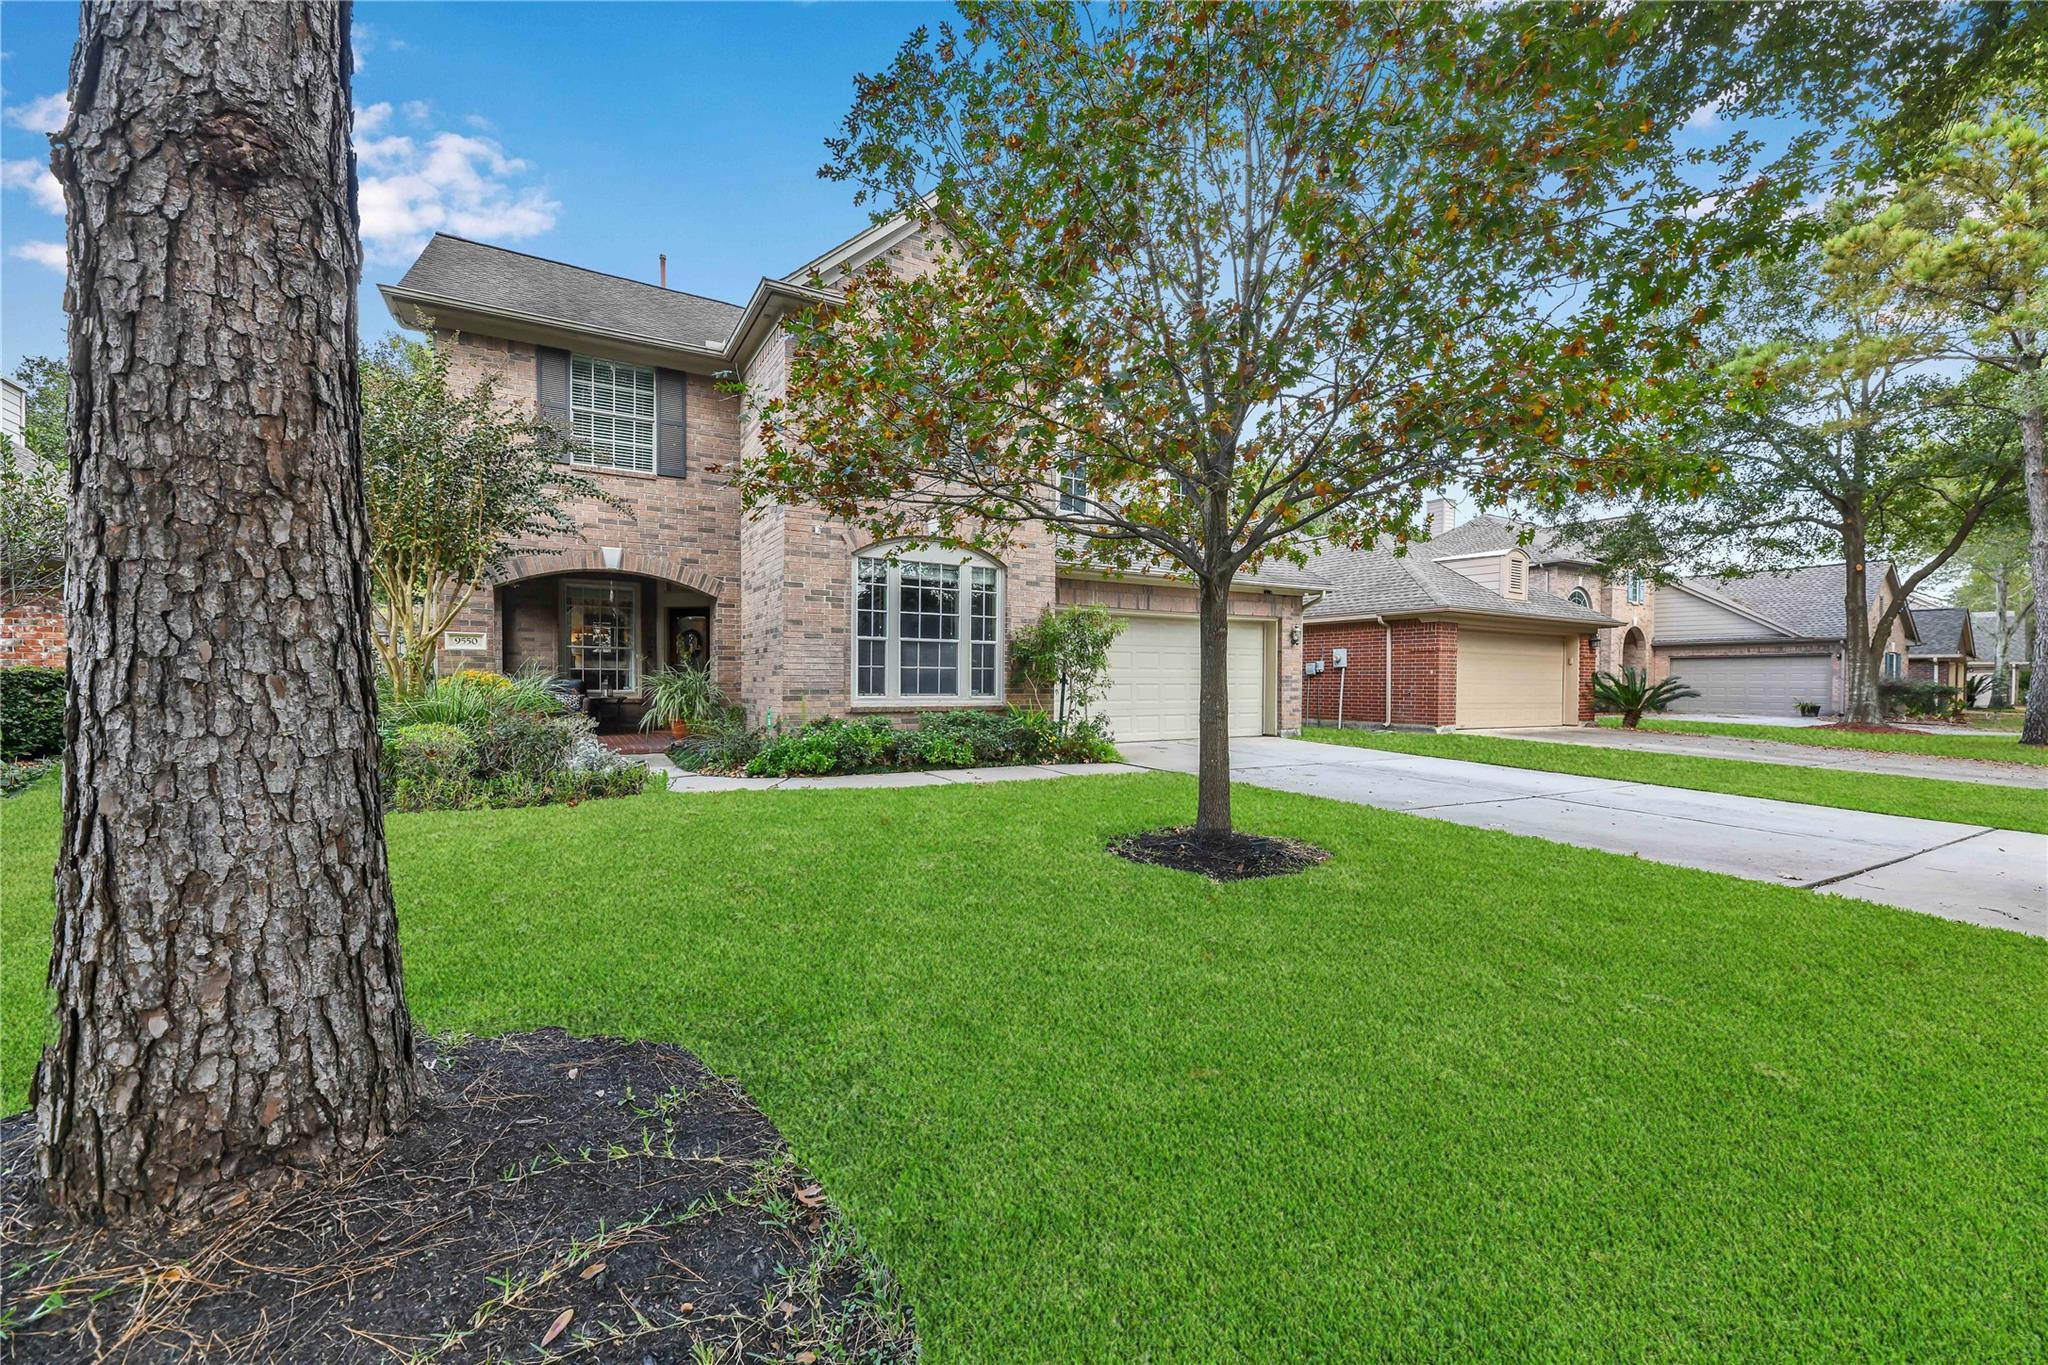 9550 Kelsey Meadows Court Property Photo - Houston, TX real estate listing